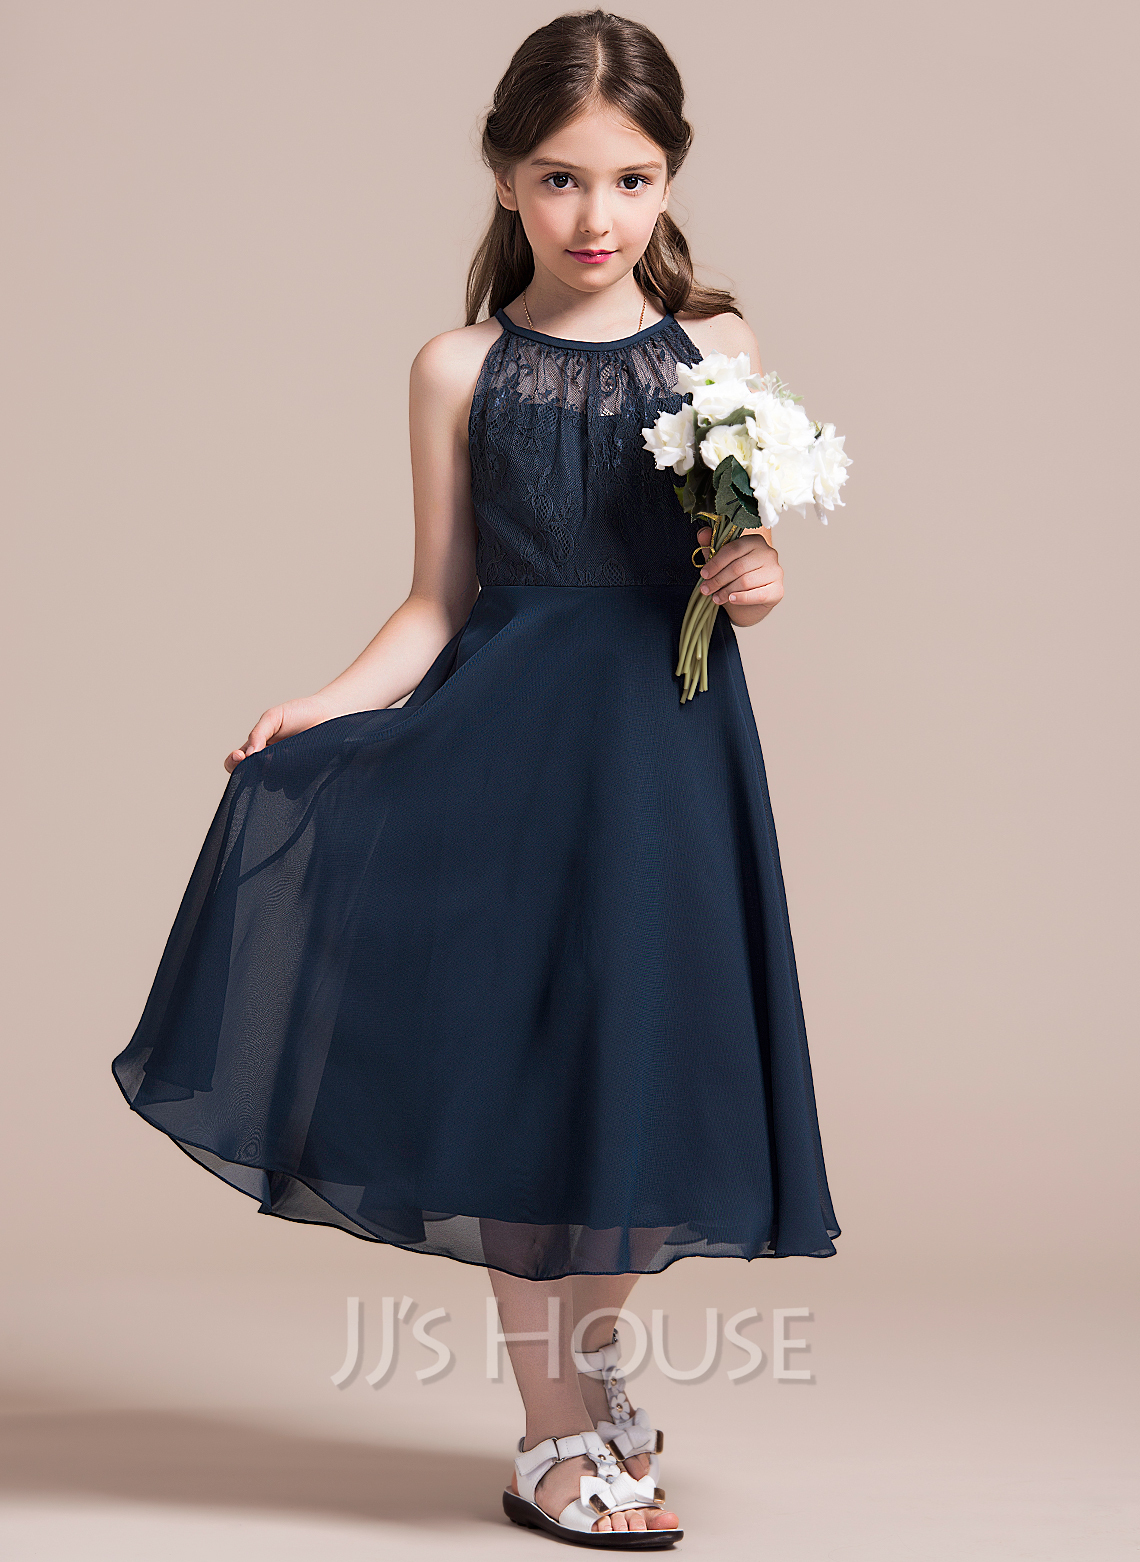 A-Line/Princess Tea-length Flower Girl Dress - Chiffon/Lace Sleeveless Scoop Neck With Ruffles